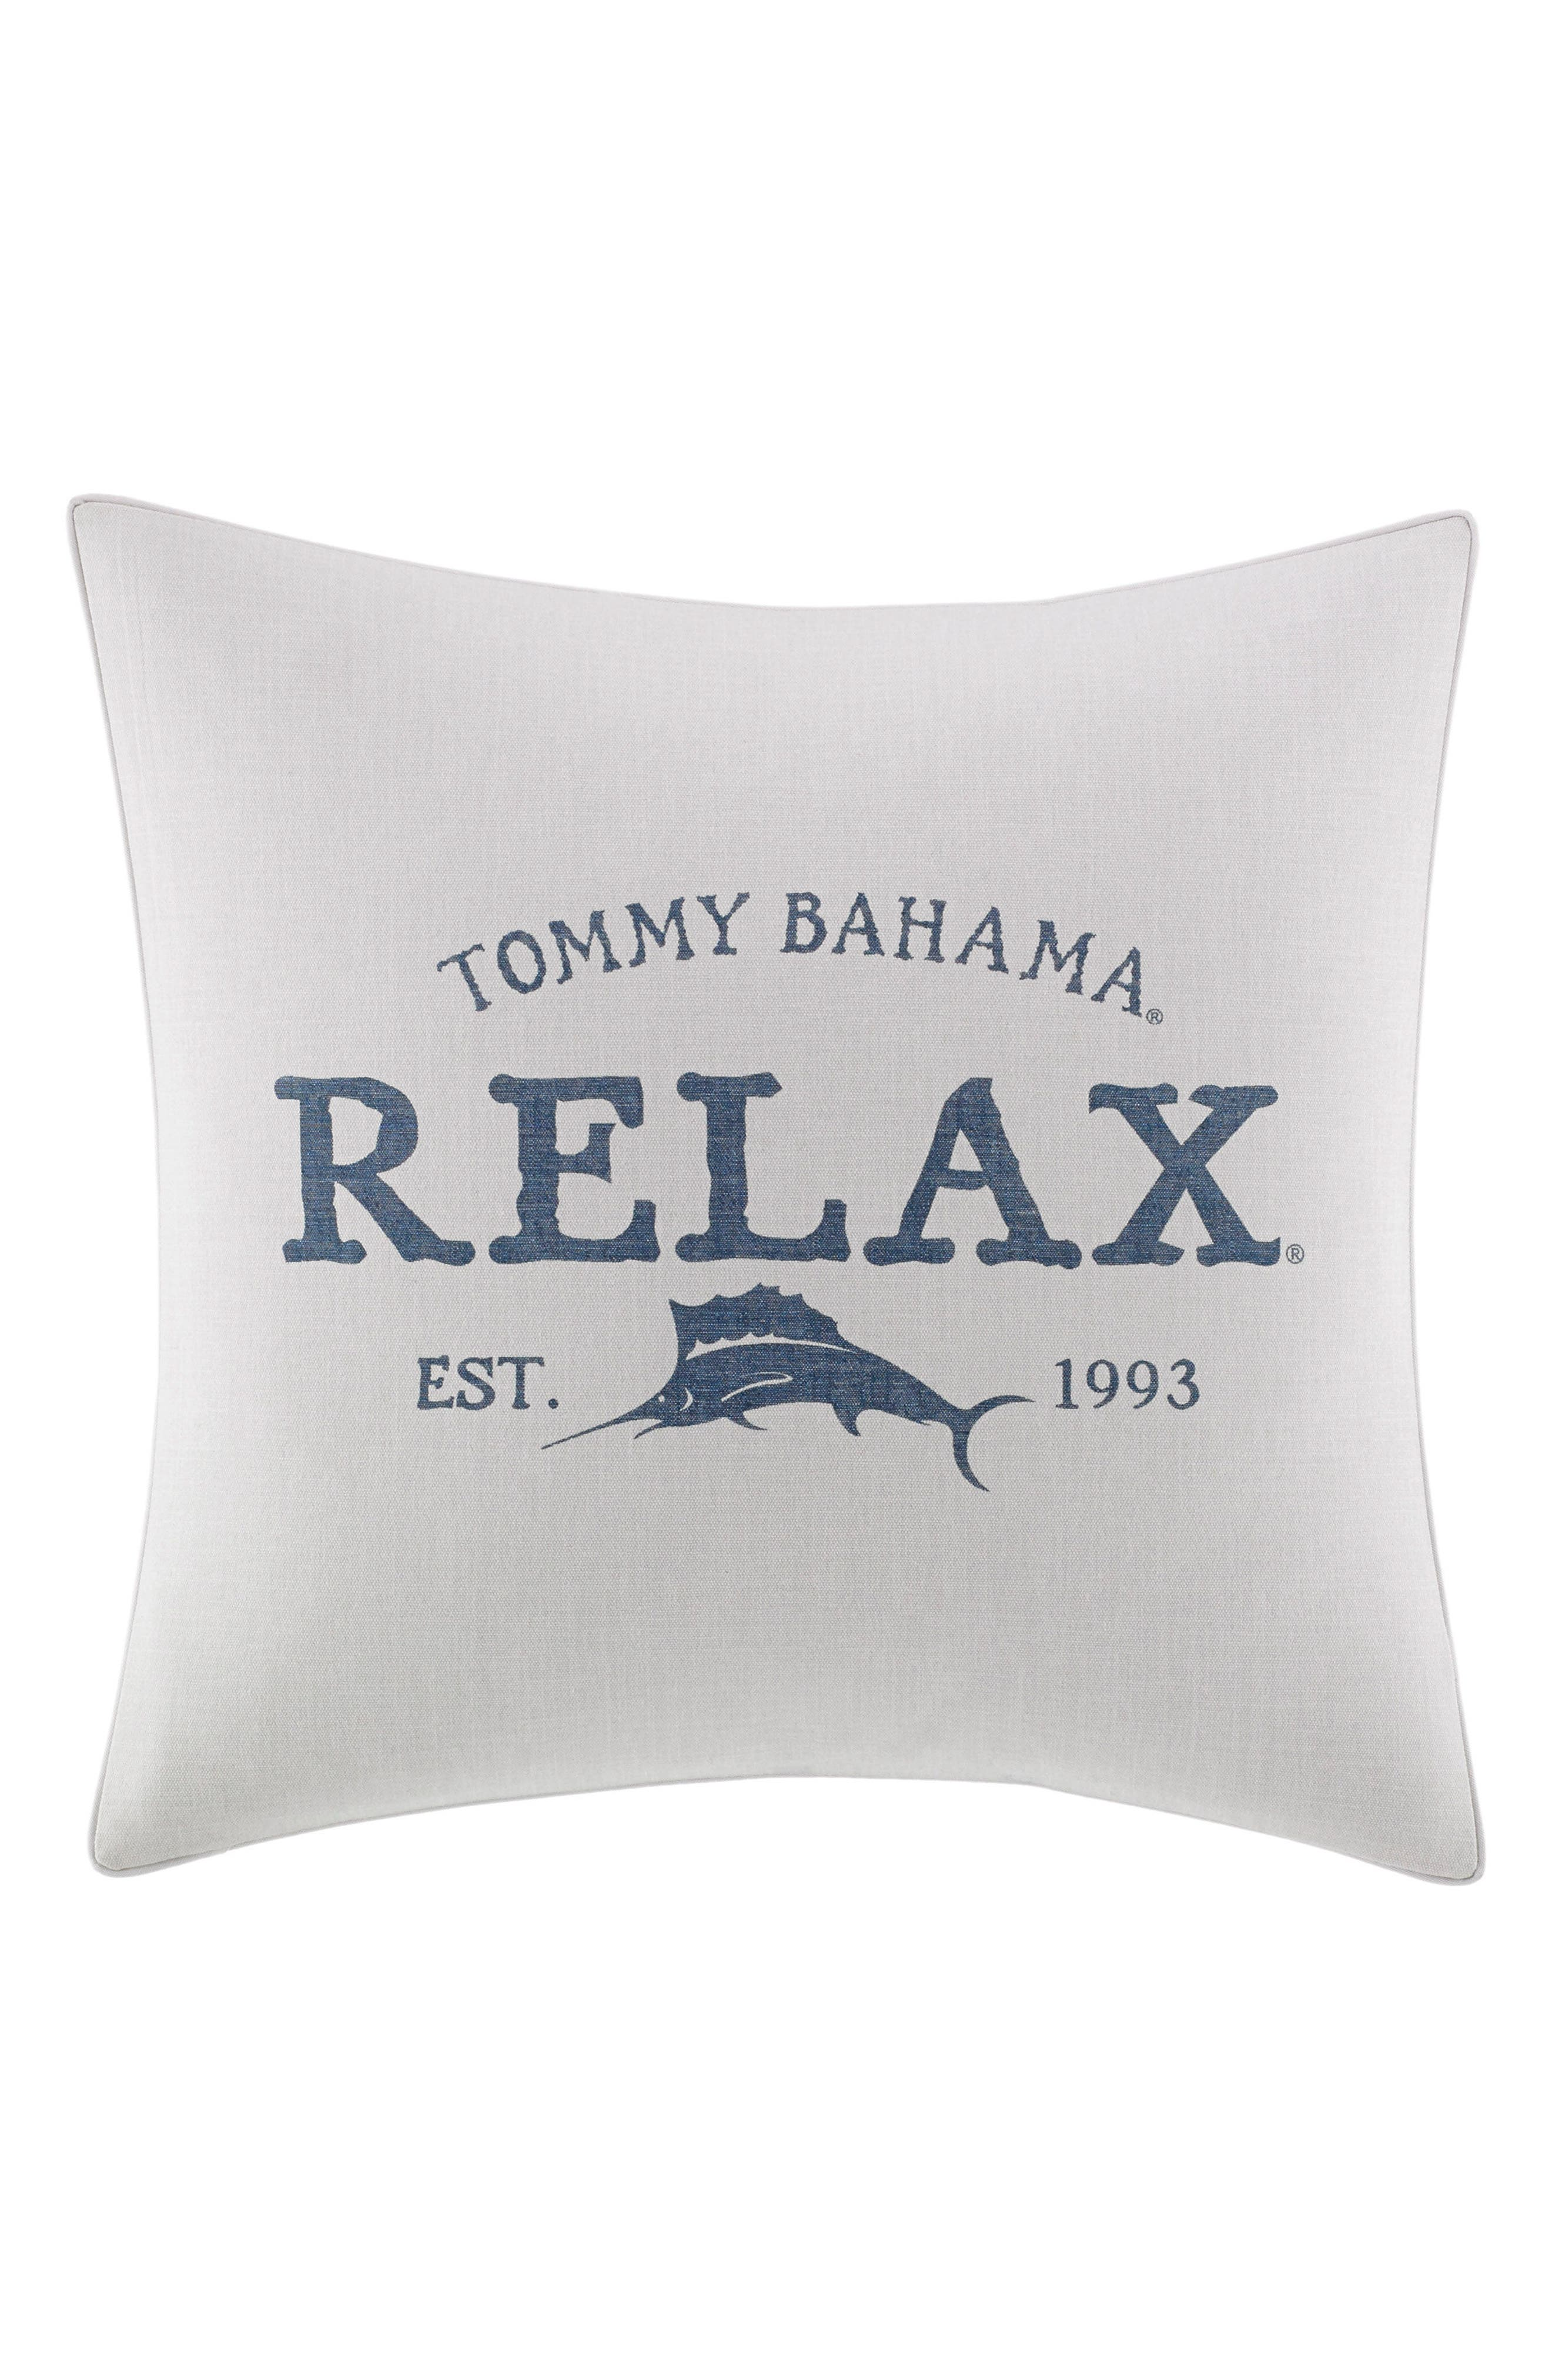 Relax Accent Pillow,                         Main,                         color, 300